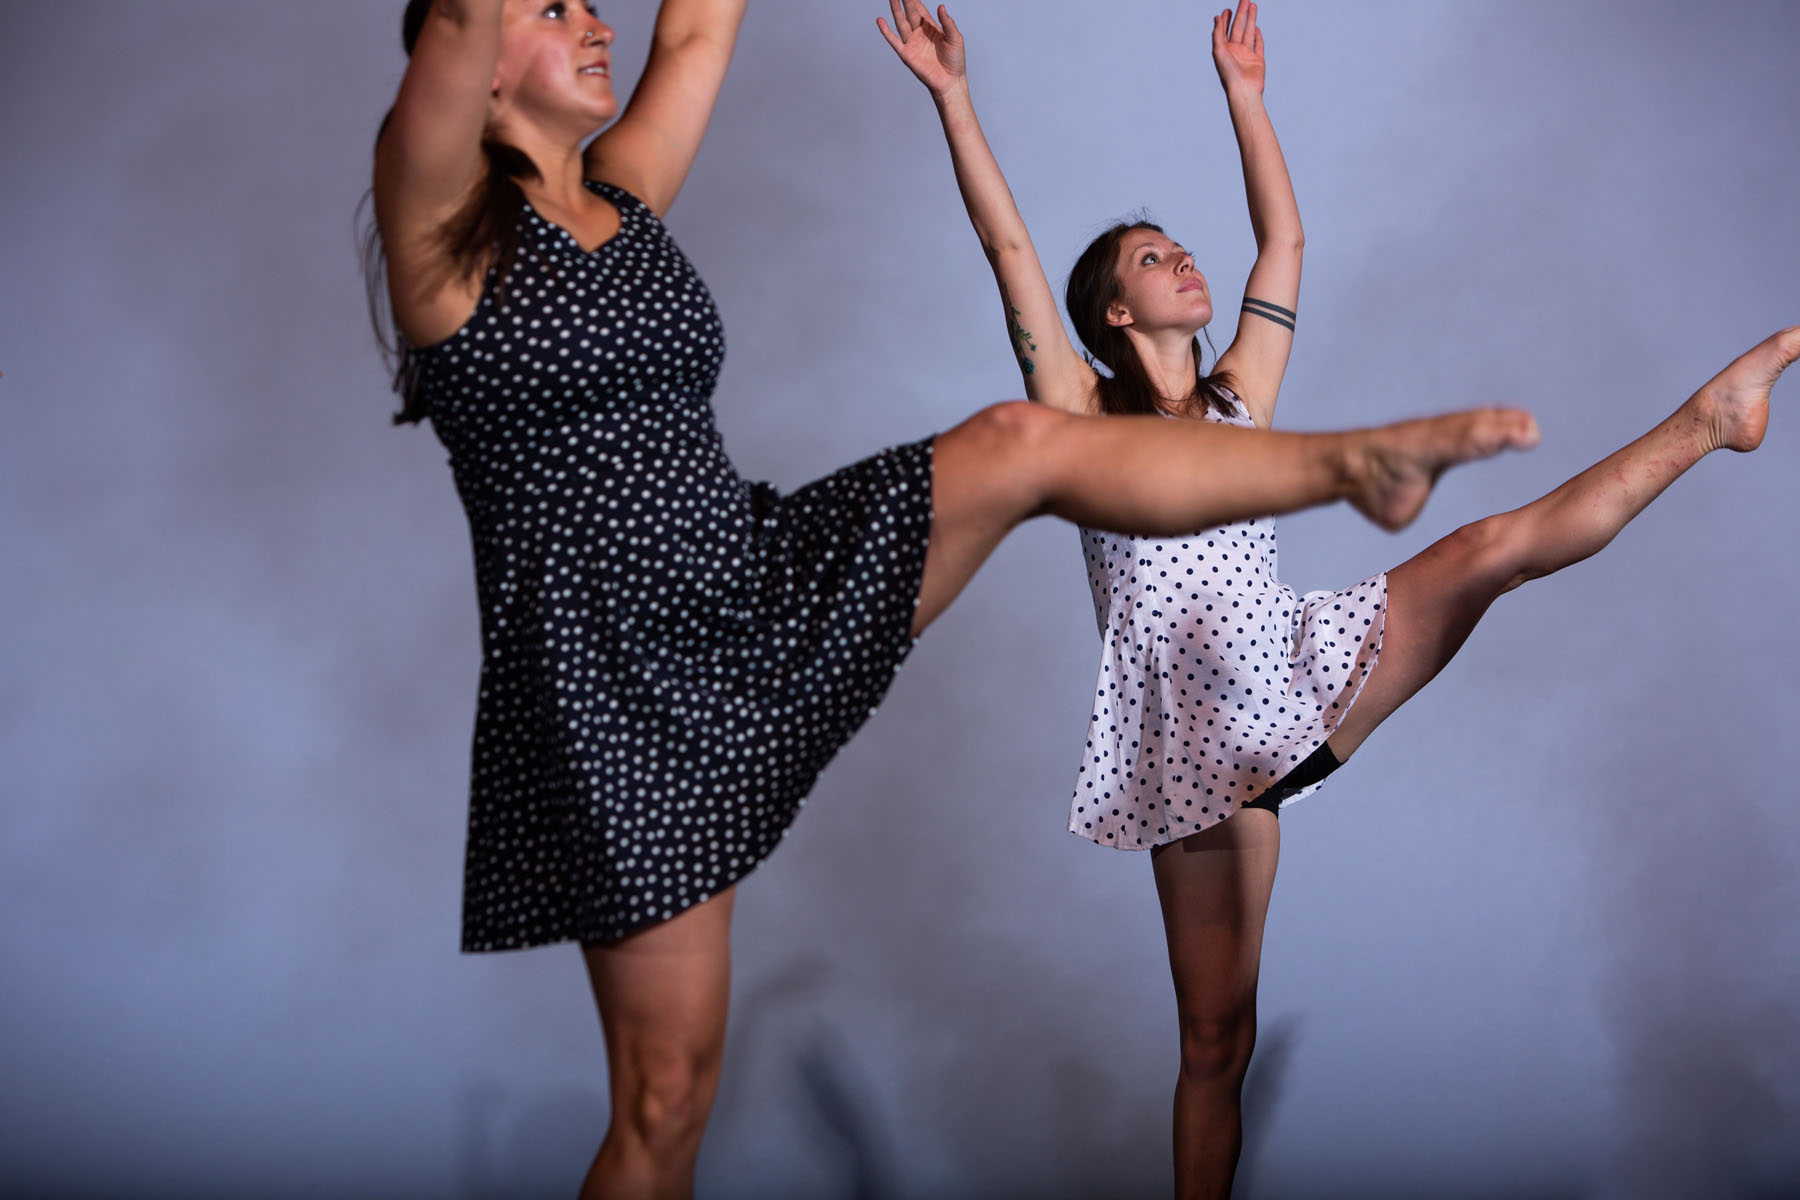 Canyon Movement Company hosts Launch - Flagstaff Dance Festival at the Clifford E. White Theater, Friday and Saturday, May 17 and 18, 2019. Photo by Sean Openshaw, www.SeanOpenshaw.com